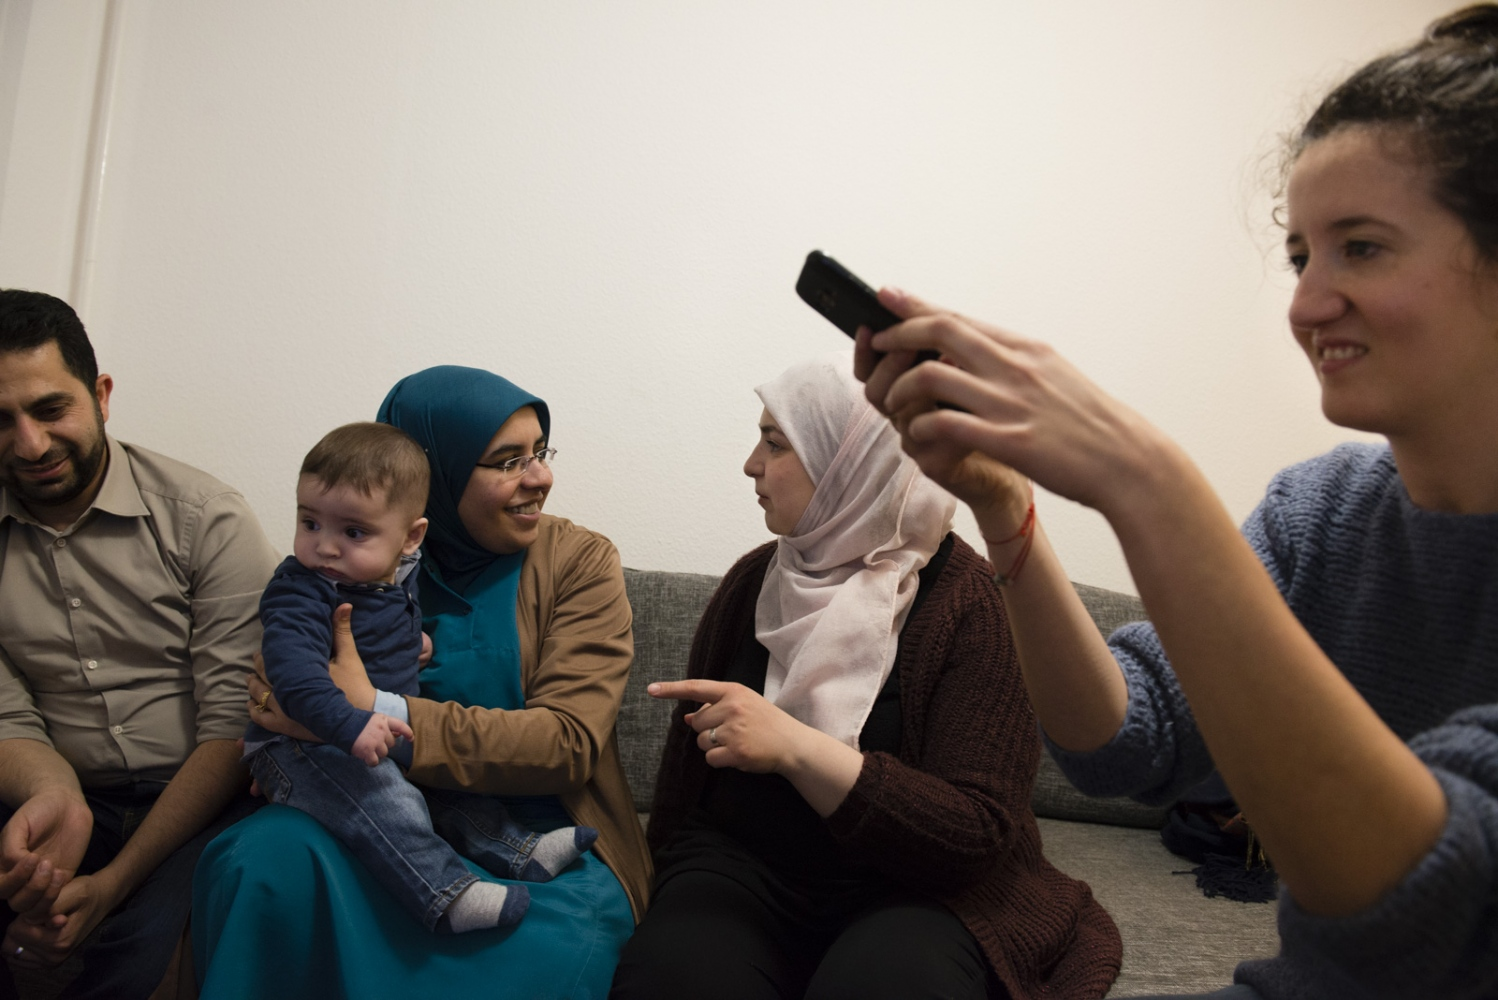 BERLIN| GERMANY | 2017-04-13 | On the third anniversary of their marriage, Maher (24) and Amani (32) host friends in their new home in Lichtenberg, Berlin. The couple, both from Damascus and IT students, had to quit school and flee Syria due to the ongoing war there. The couple arrived in Germany in July 2015 and have settled down and started a new family with giving birth to Baby Kareem who is not 4 months old at this time.